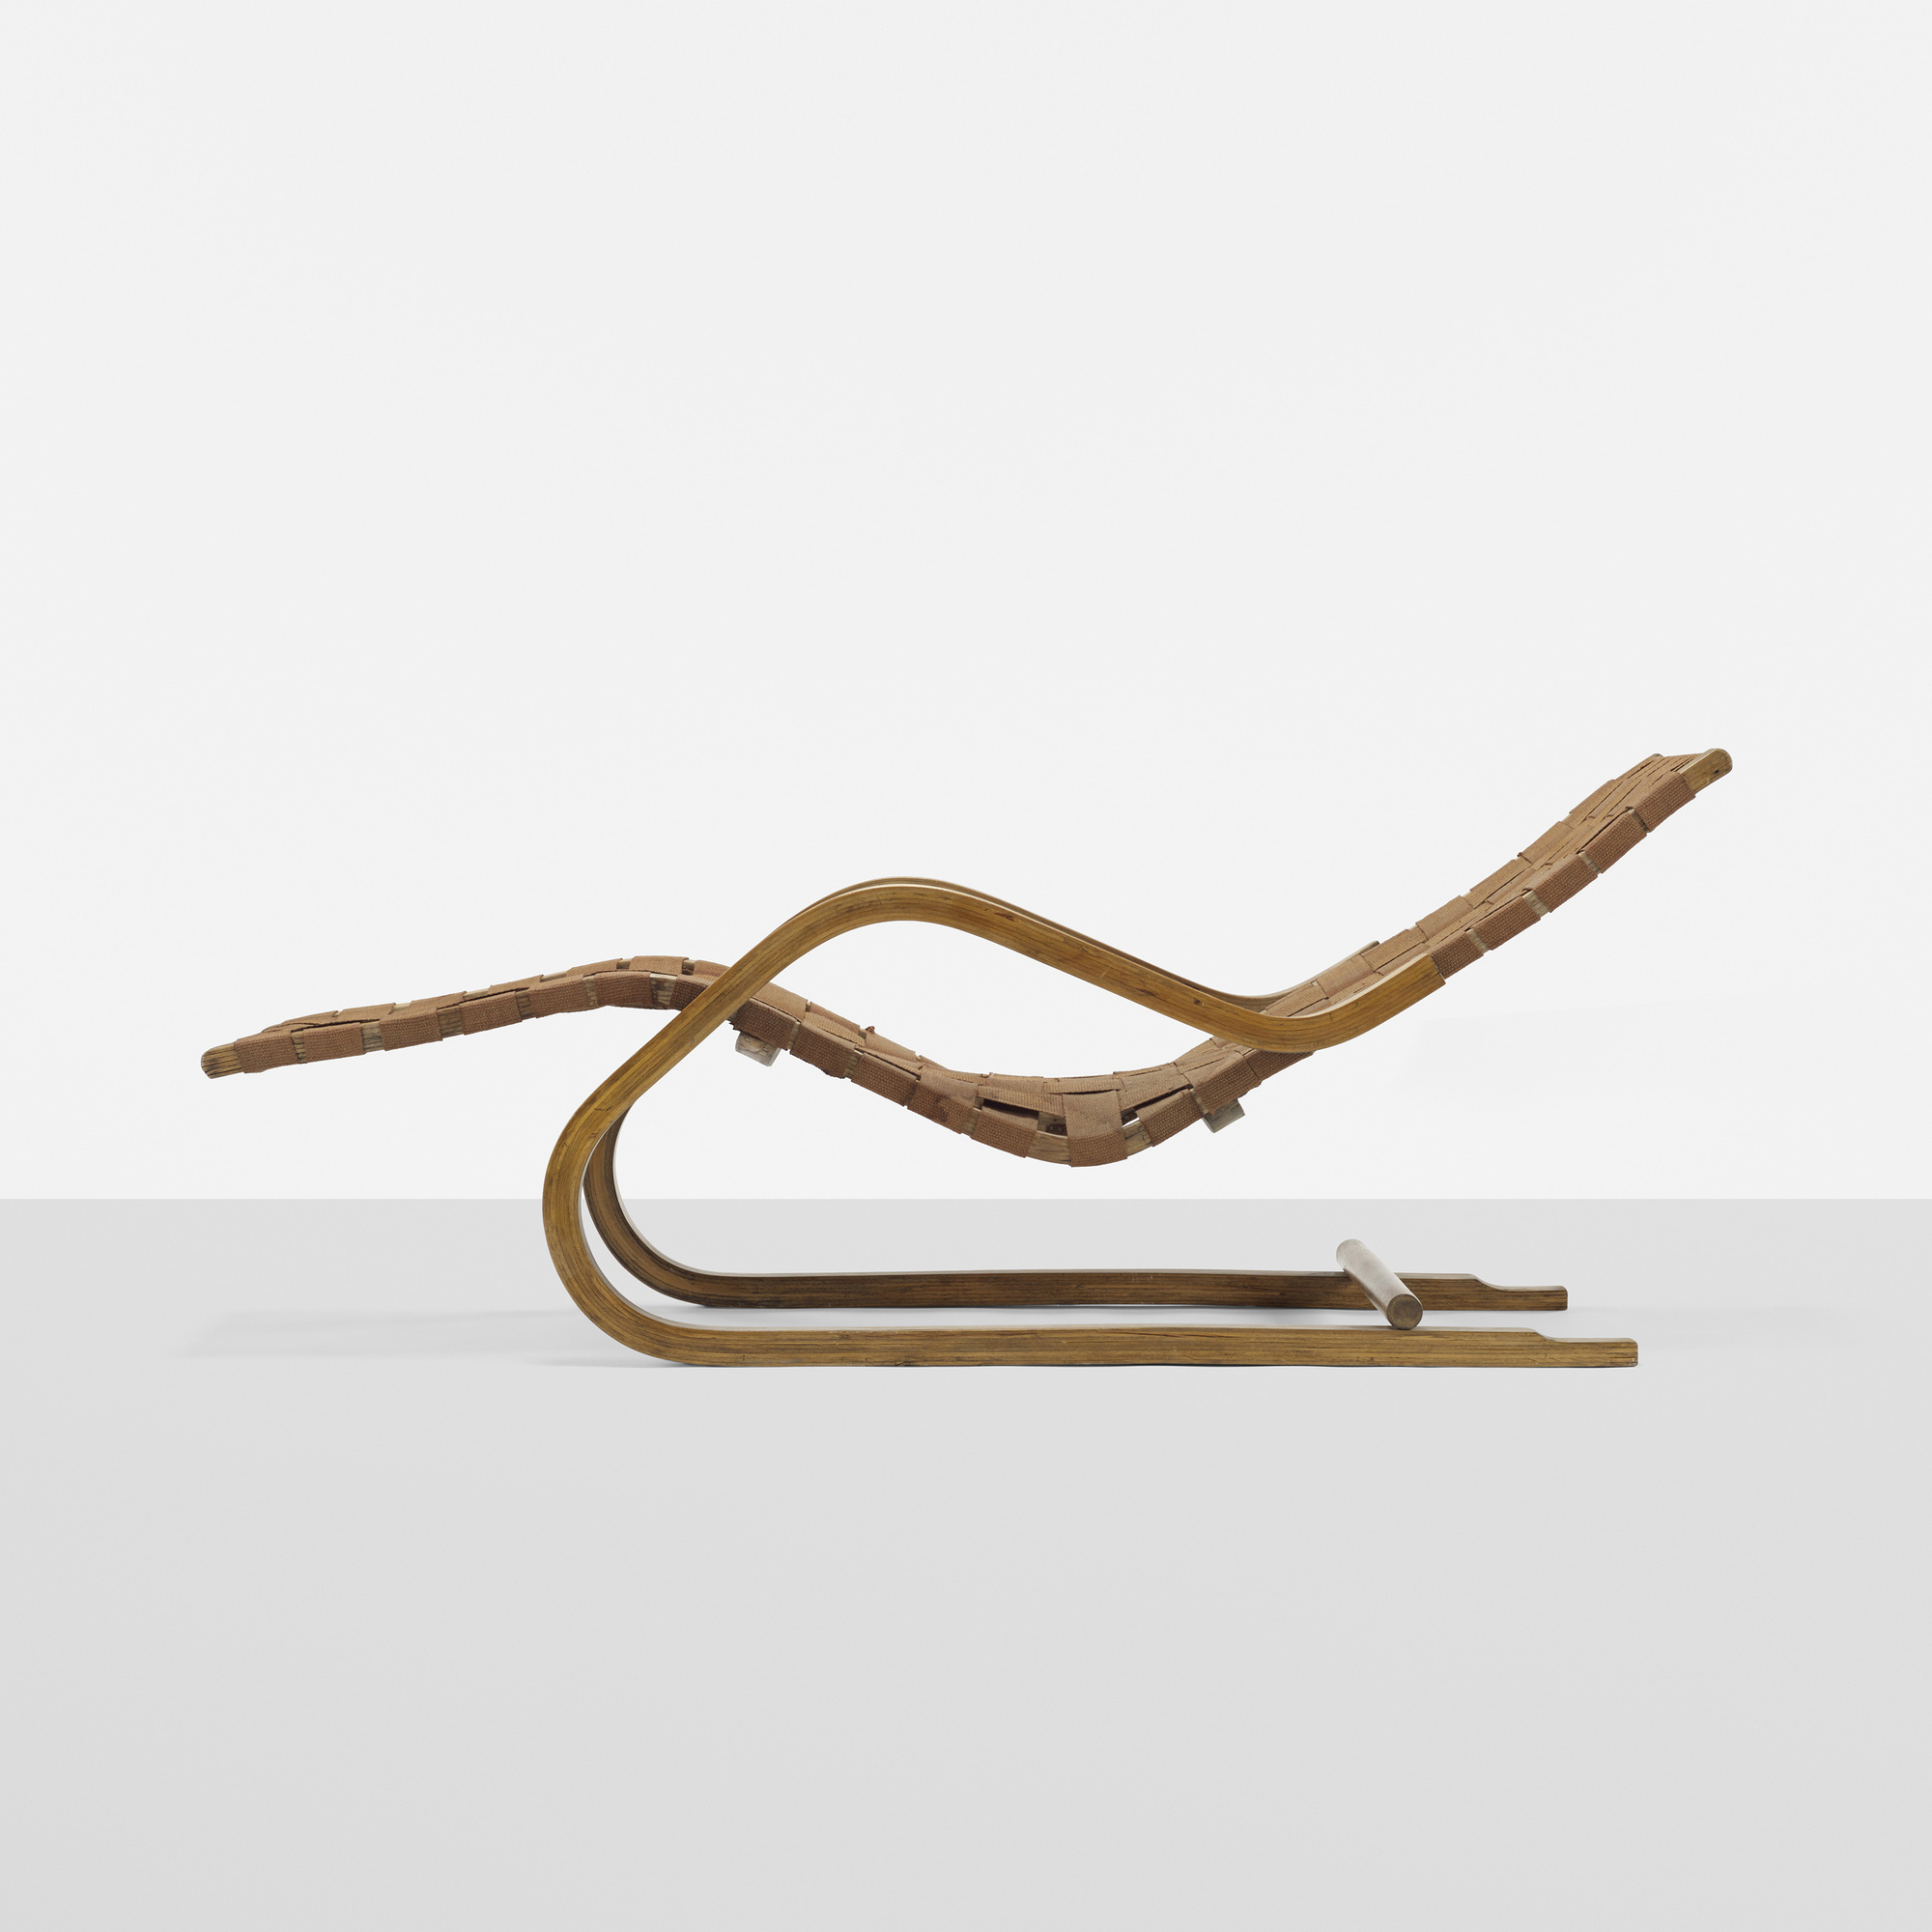 143 Alvar Aalto Cantilevered Chaise Model 39 1 Of 3